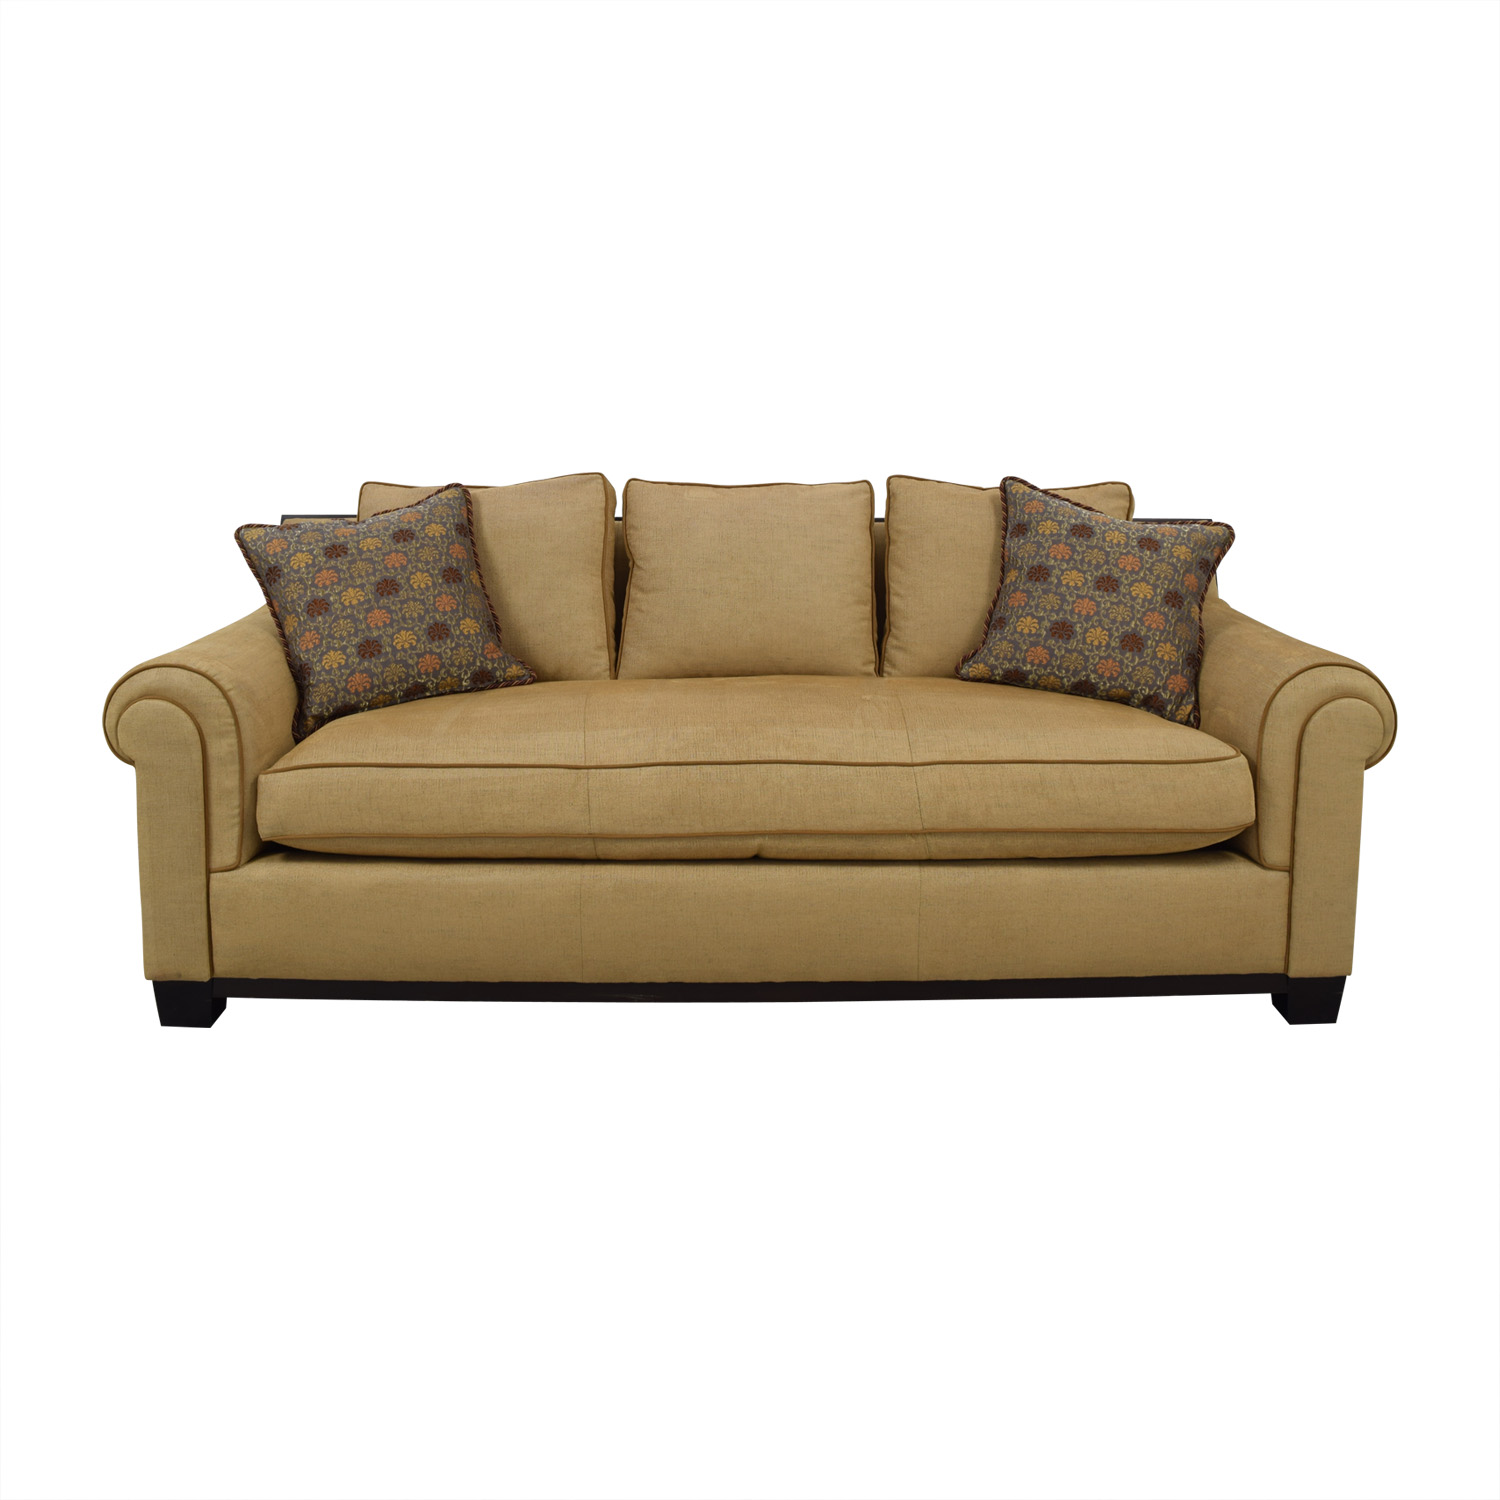 Custom Tan Single Cushion Sofa sale